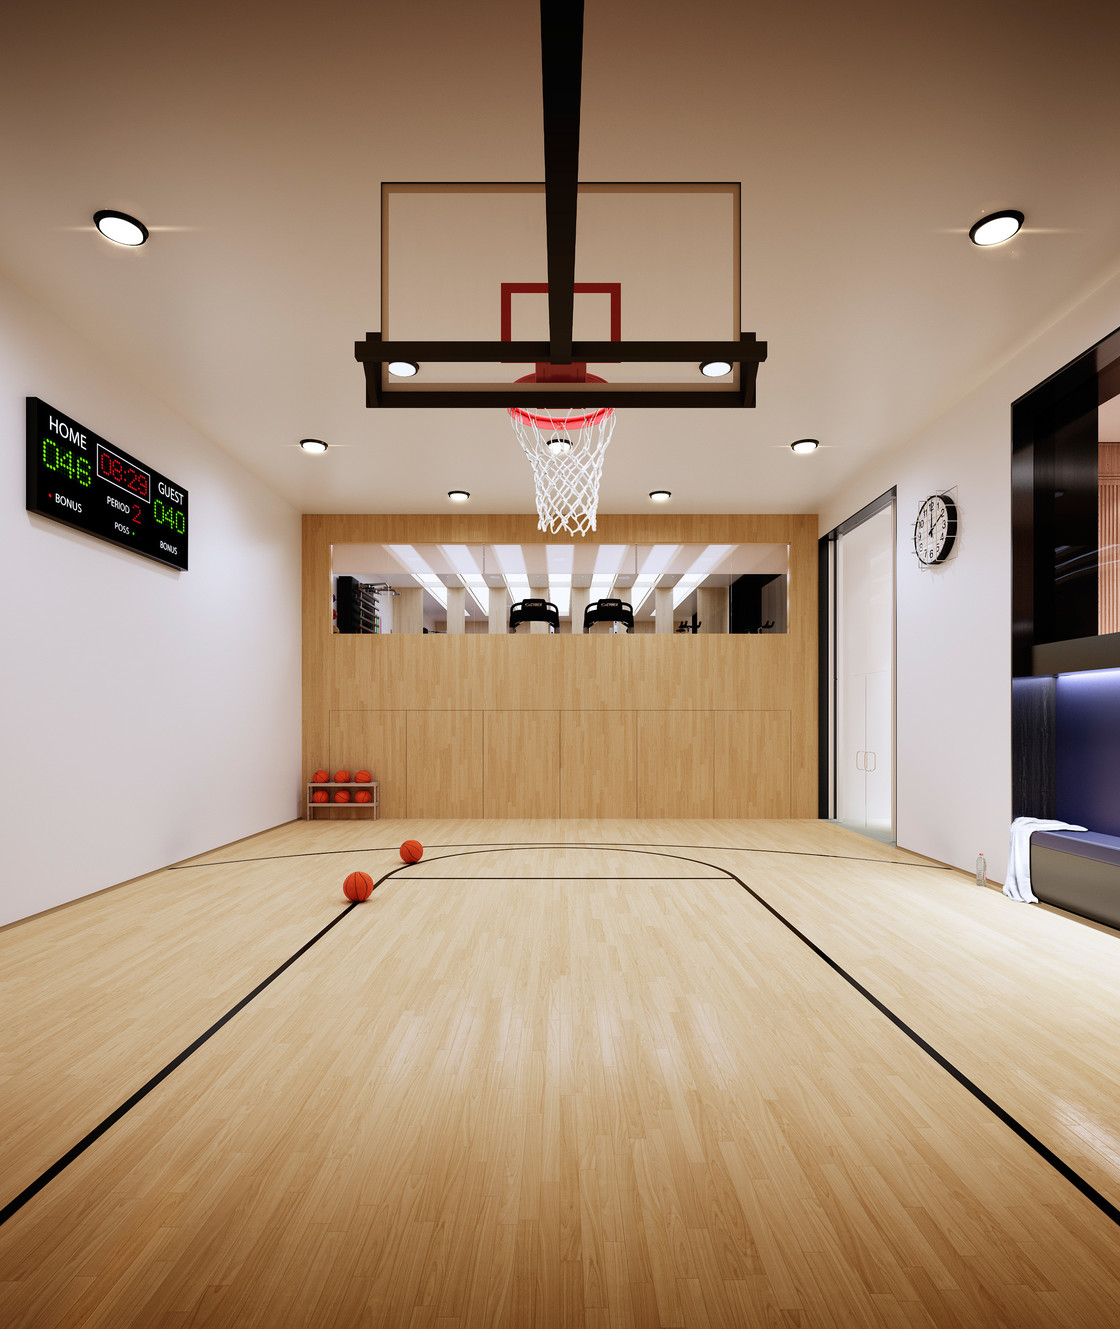 The building's unique basketball court offers endless possibilities for fun. Residents have their own private space to play—whether it's shooting baskets after dinner, hosting a yoga class on the weekend, or just running around on a rainy day.